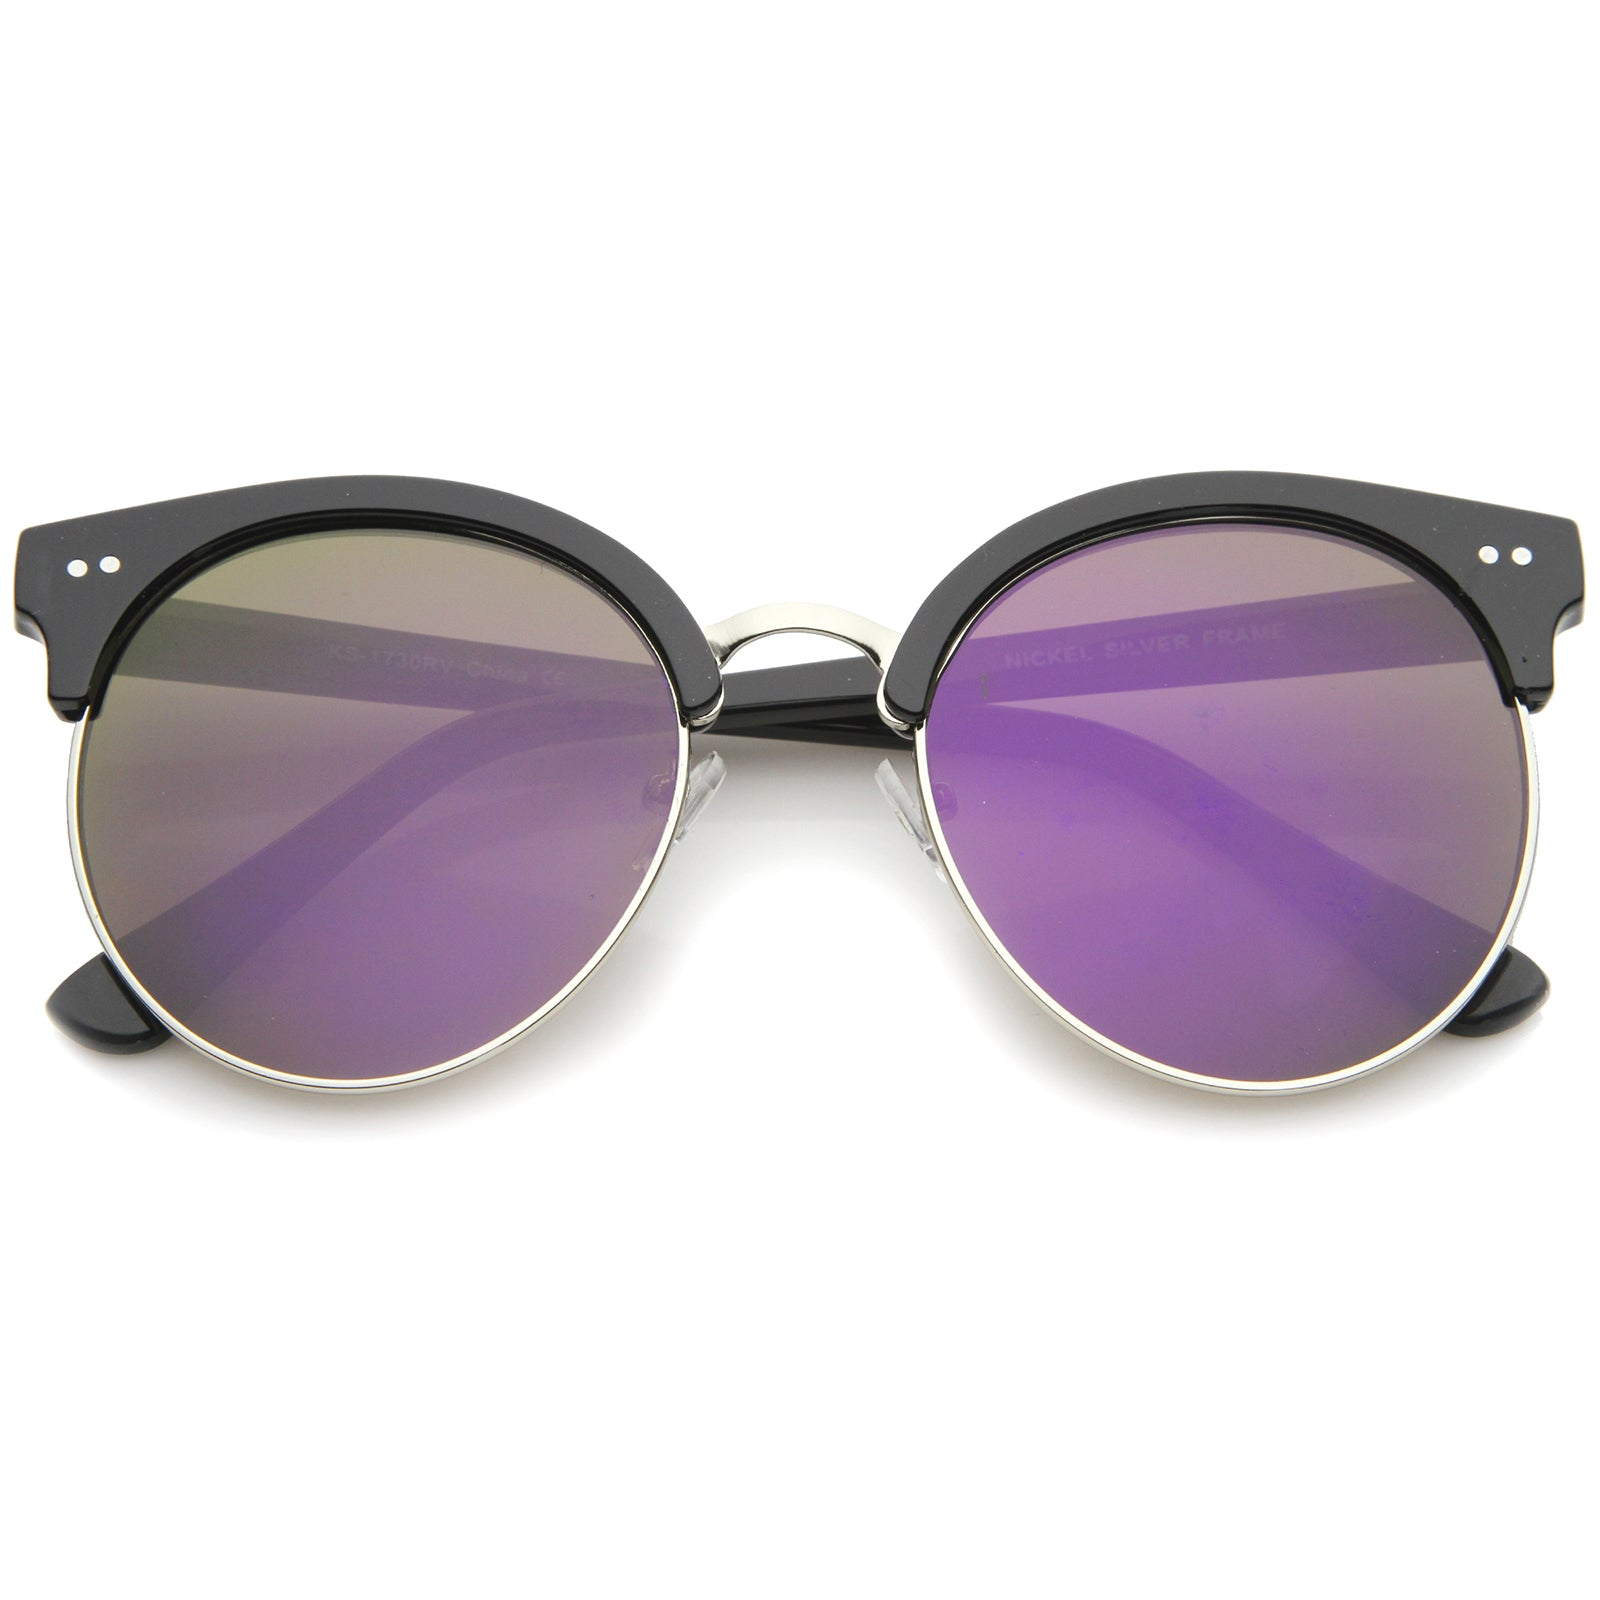 Womens Oversized Sunglasses With UV400 Protected Mirrored Lens - sunglass.la - 17